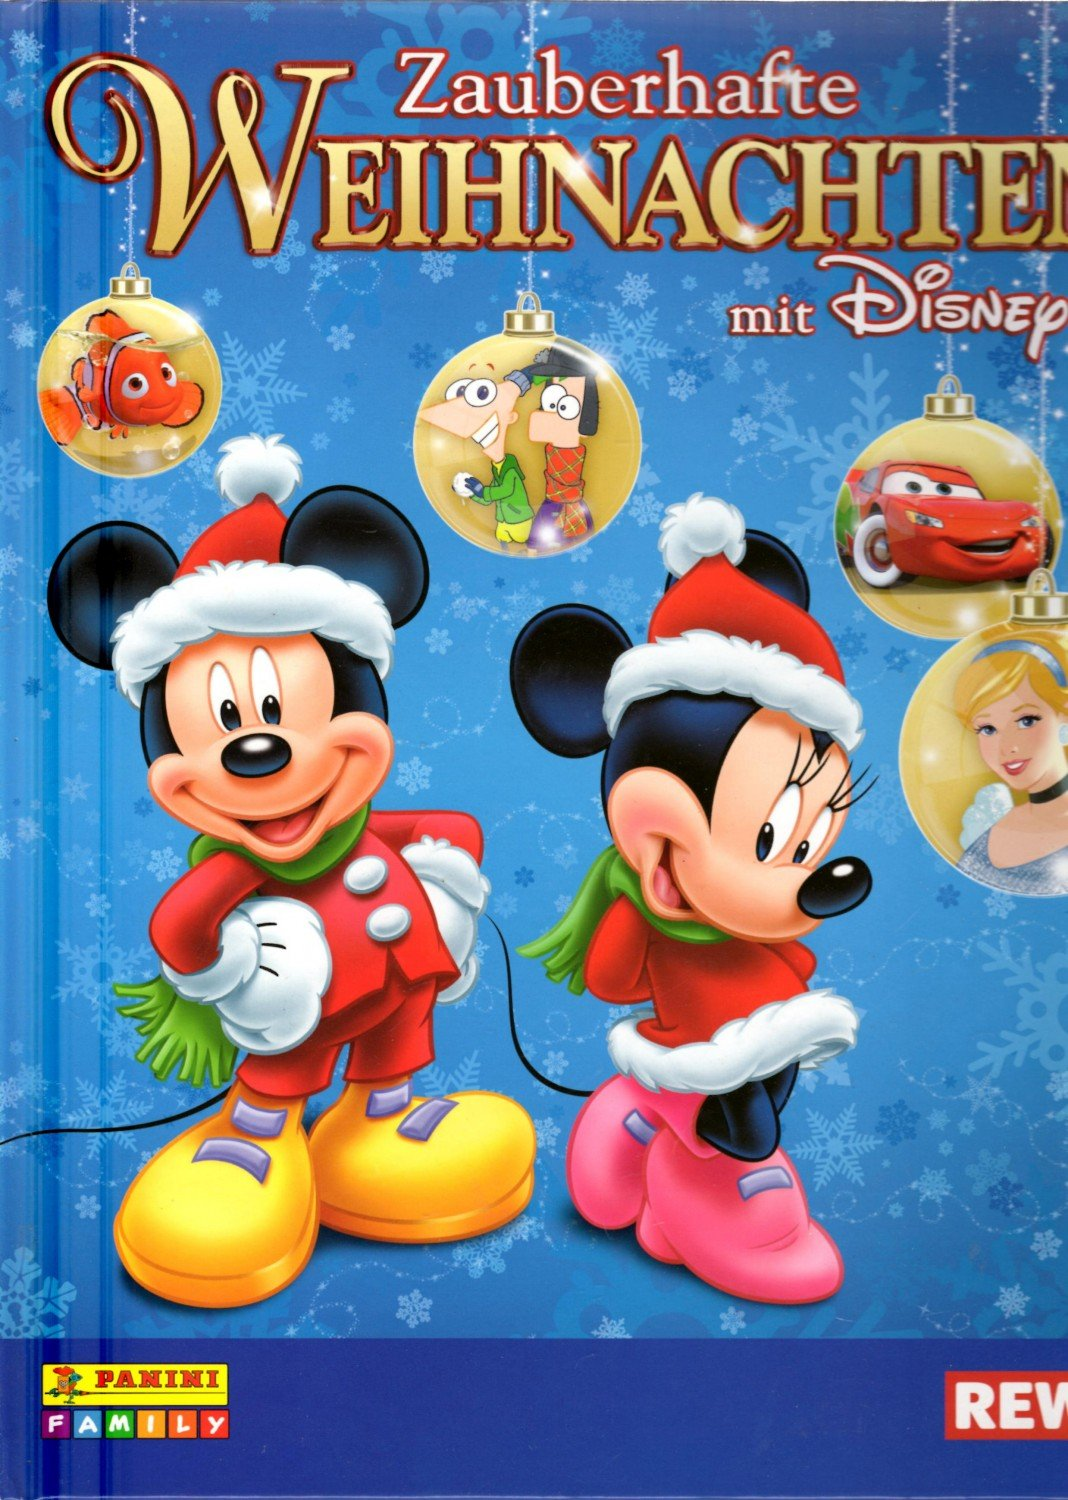 rewe zauberhafte weihnachten mit disney sammelalbum. Black Bedroom Furniture Sets. Home Design Ideas